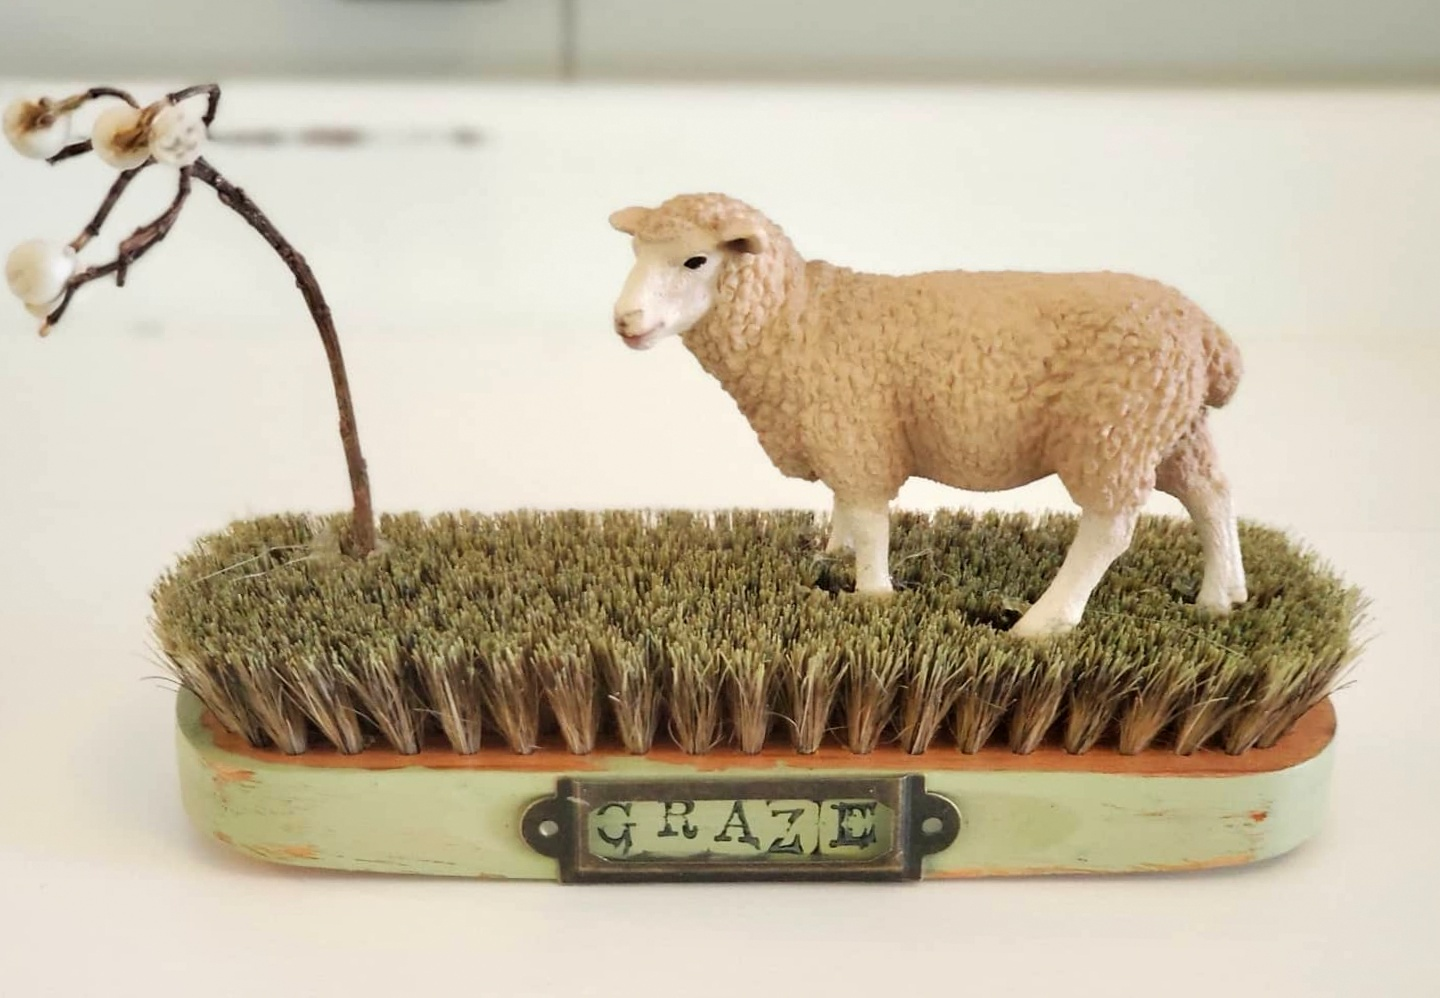 Graze sheep on a brush field vignette by Junky Encores, featured on DIY Salvaged Junk Projects 561 on Funky Junk!